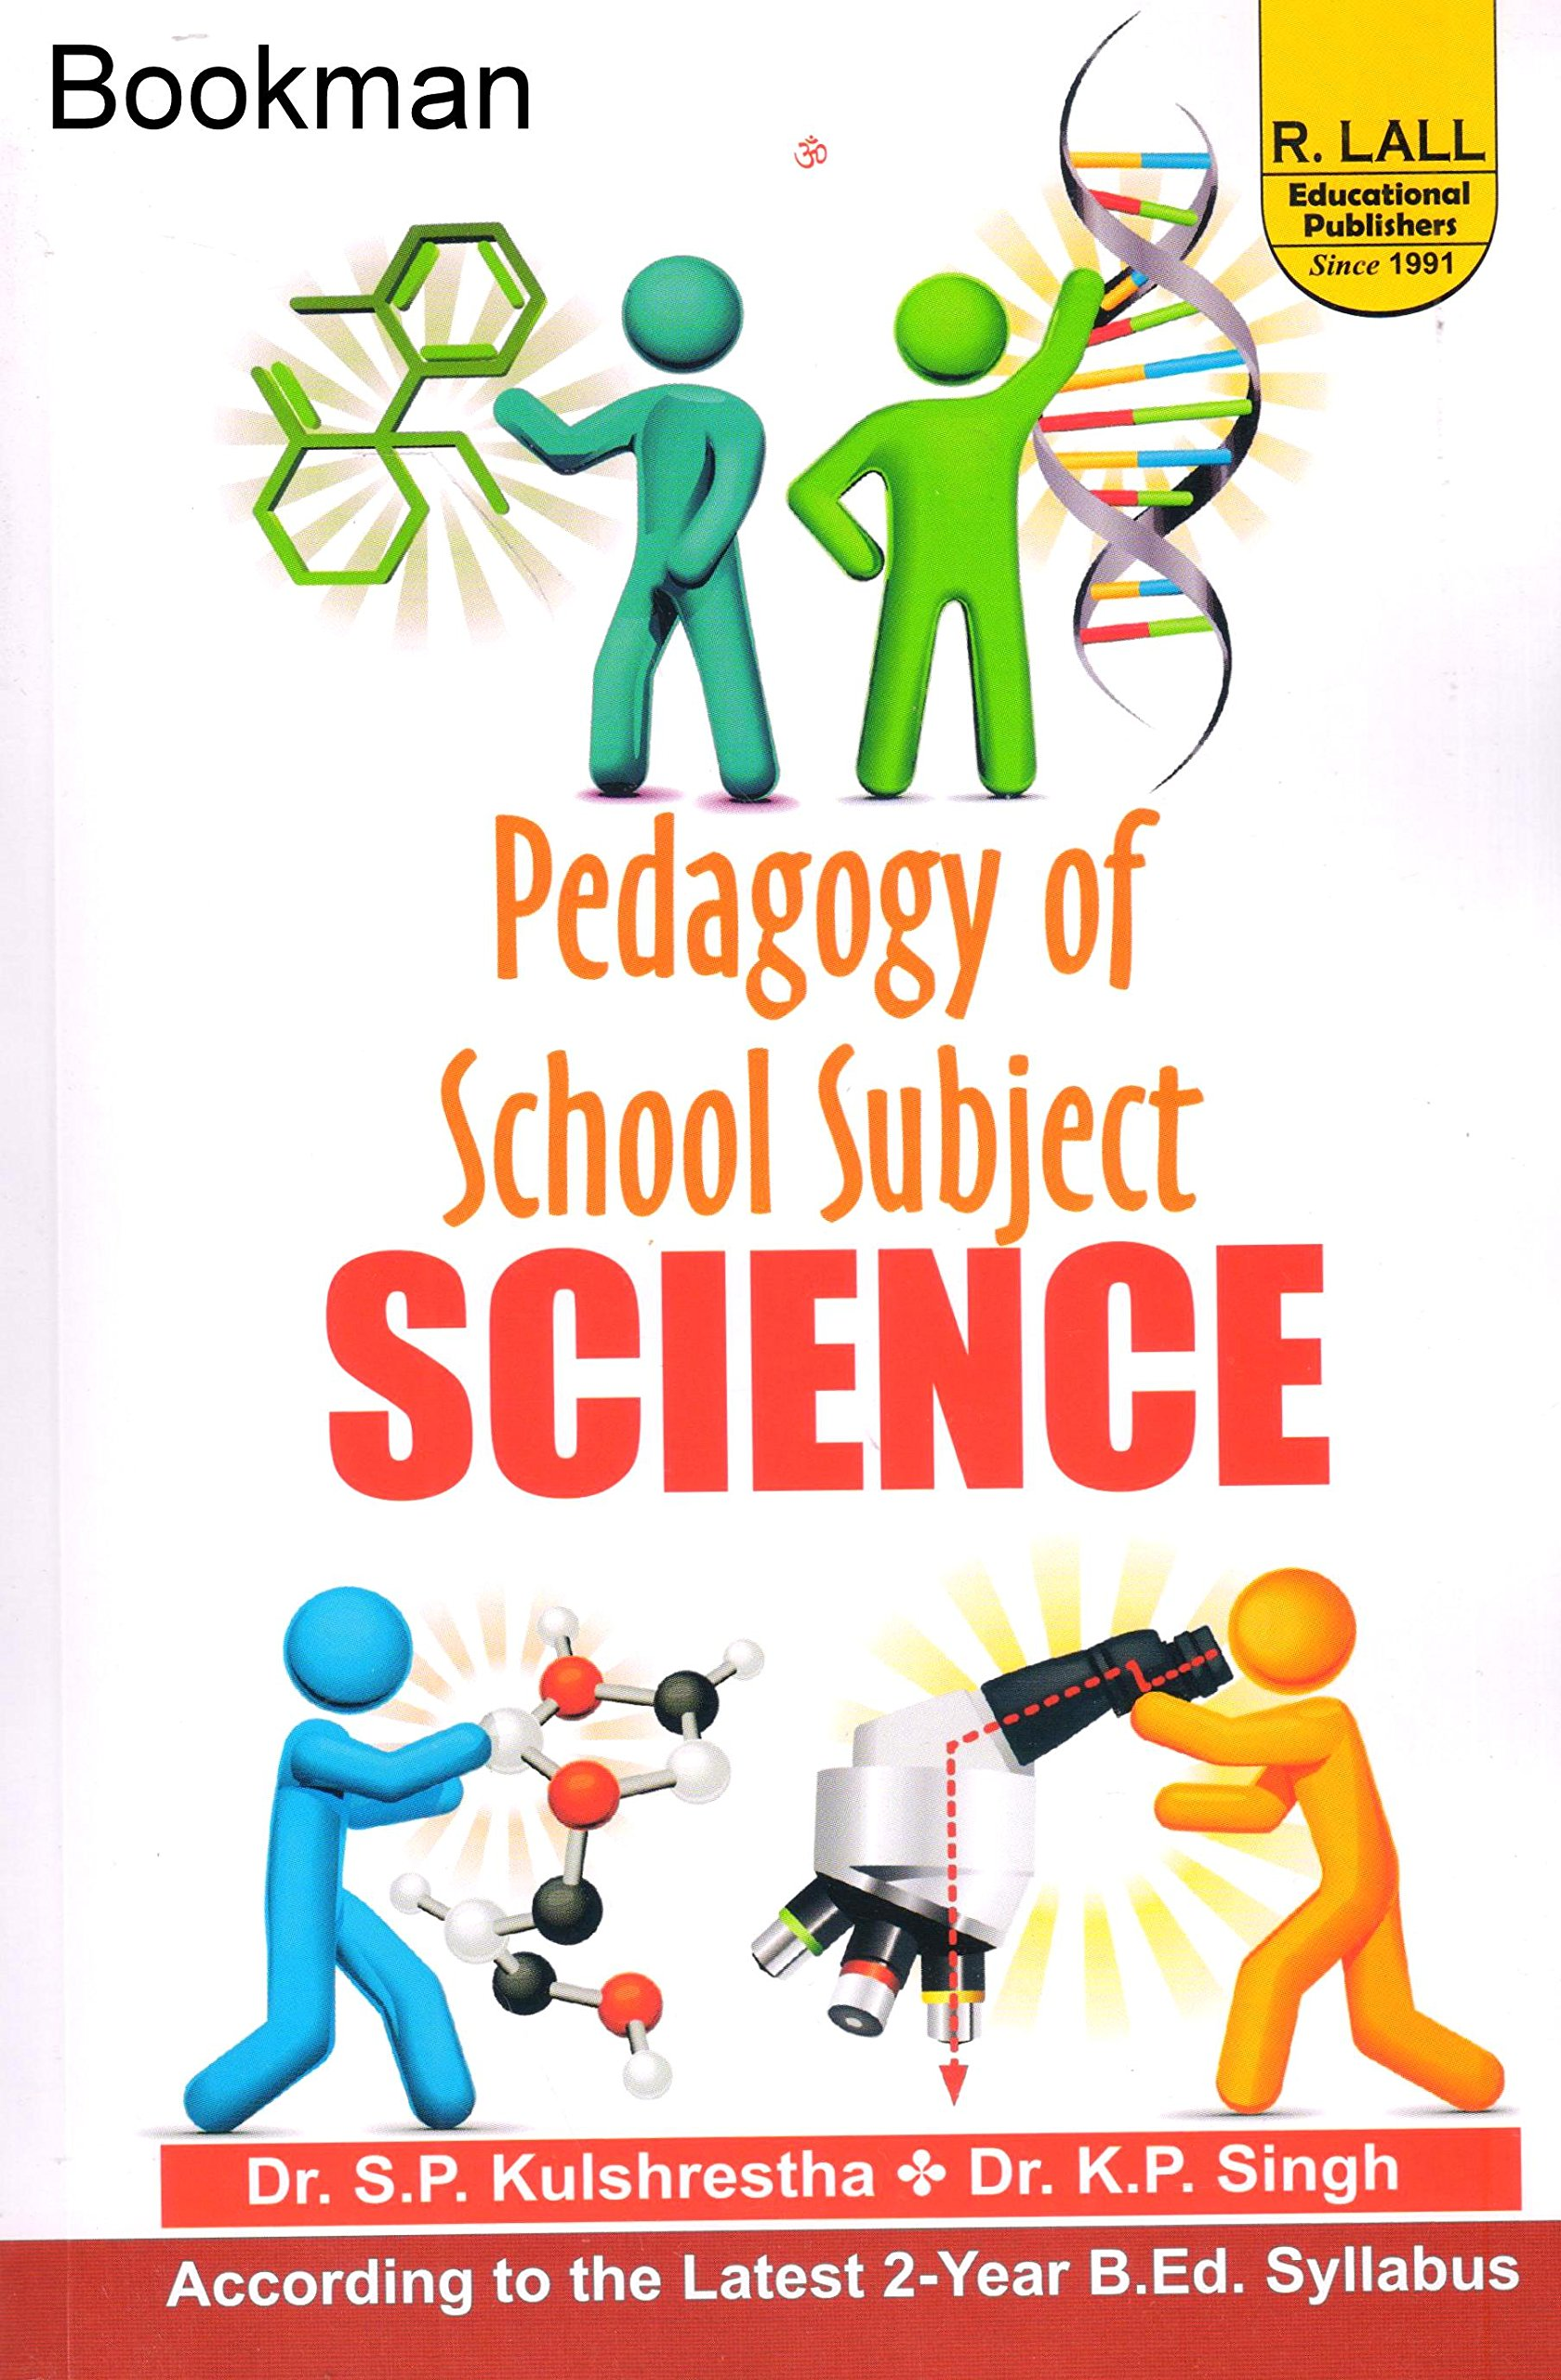 What is the subject of pedagogy